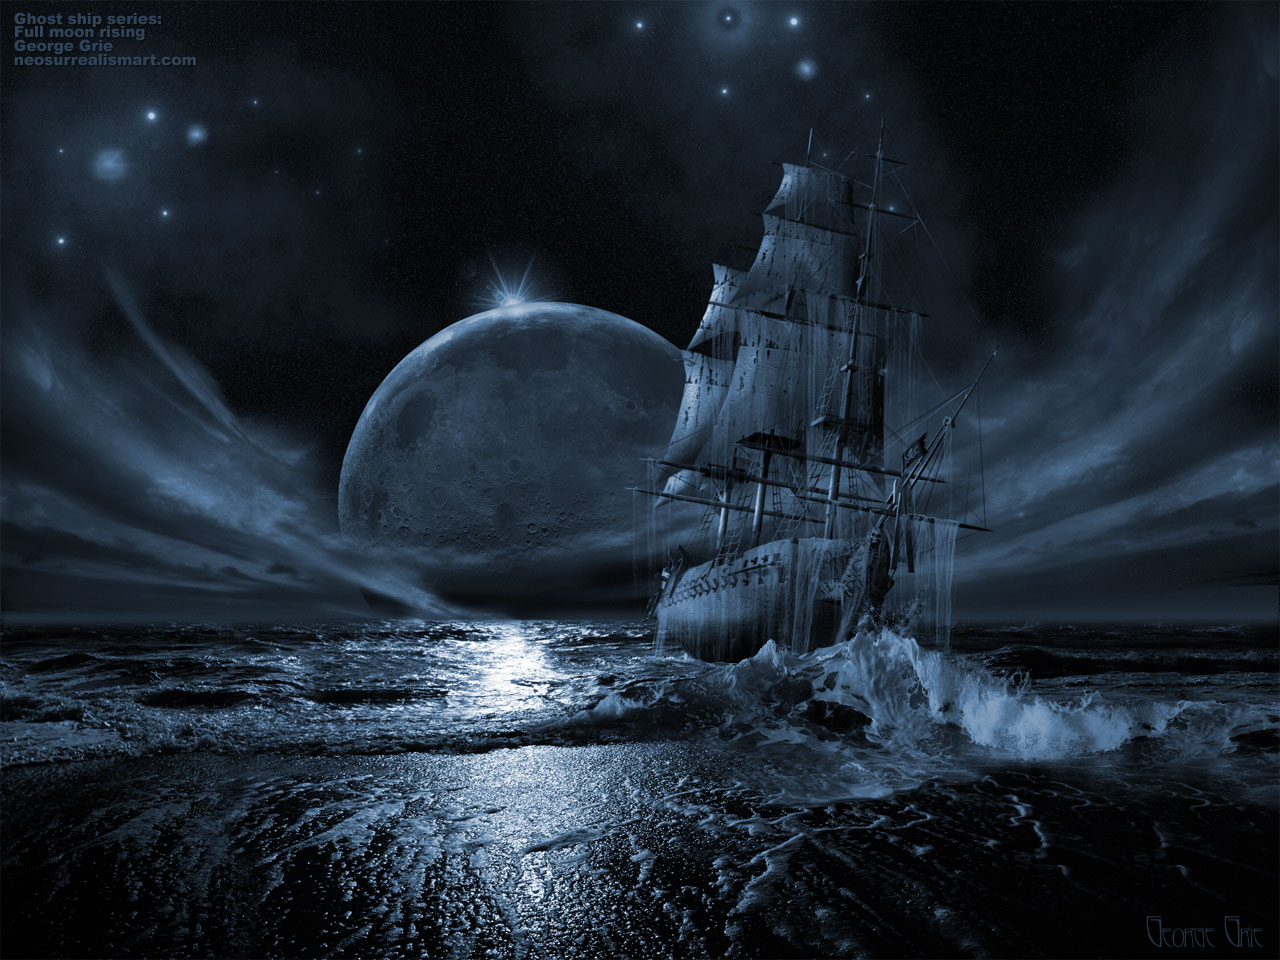 Fantasy Art, 3D Digital Art, Ghost ship series: Full moon rising Flying Dutchman Ghost ships pi.. wallpaper